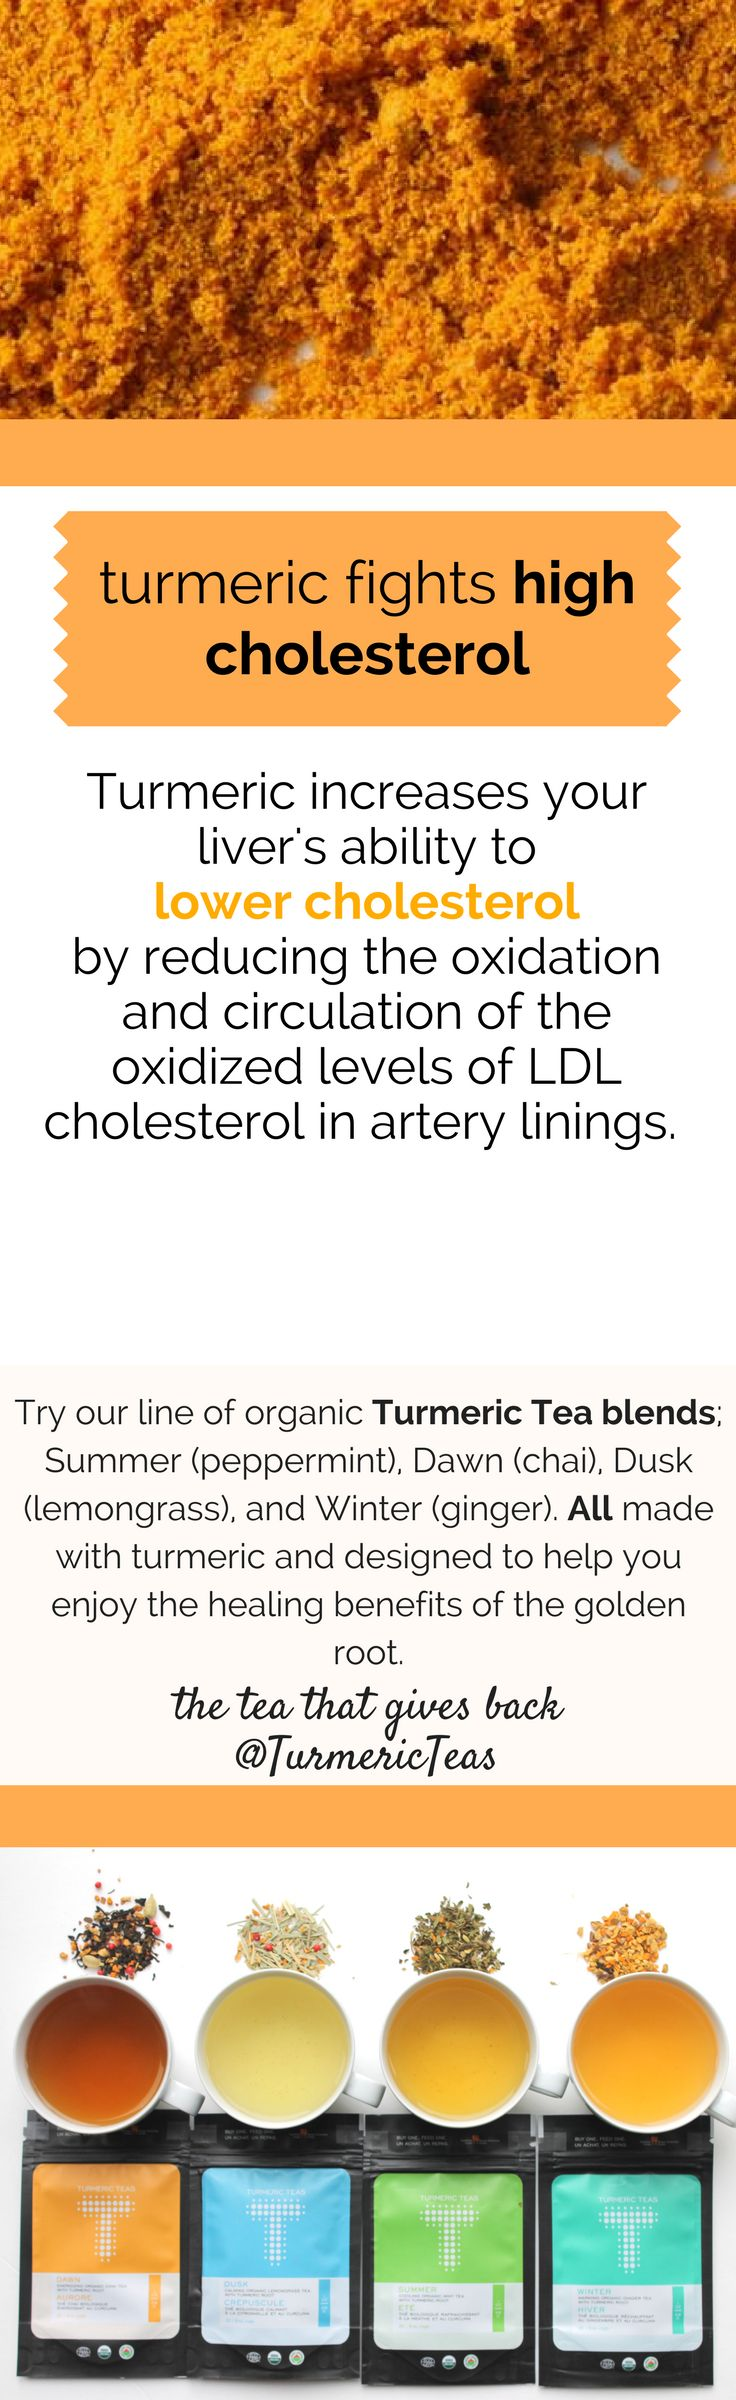 Turn to turmeric to assist in lowering LDL cholesterol in addition to a healthier diet. Click to learn more on how to fight high Cholesterol with Turmeric on our blog. #turmericteas #highcholesterol #teabenefits #turmeric #teas #healthyliving #turmericrecipes